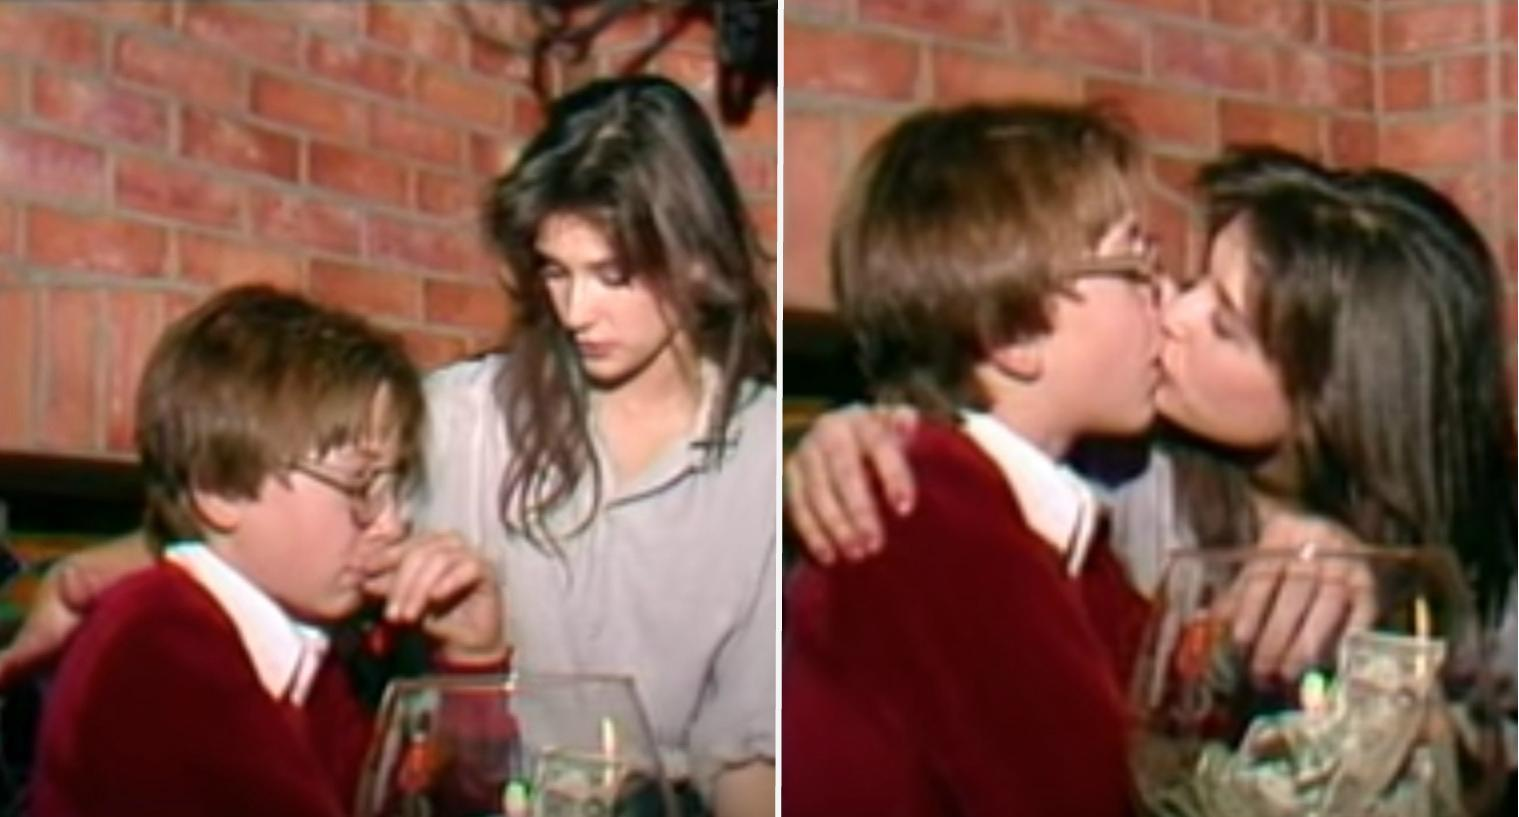 video resurfaces of demi moore passionately kissing 15-year-old boy